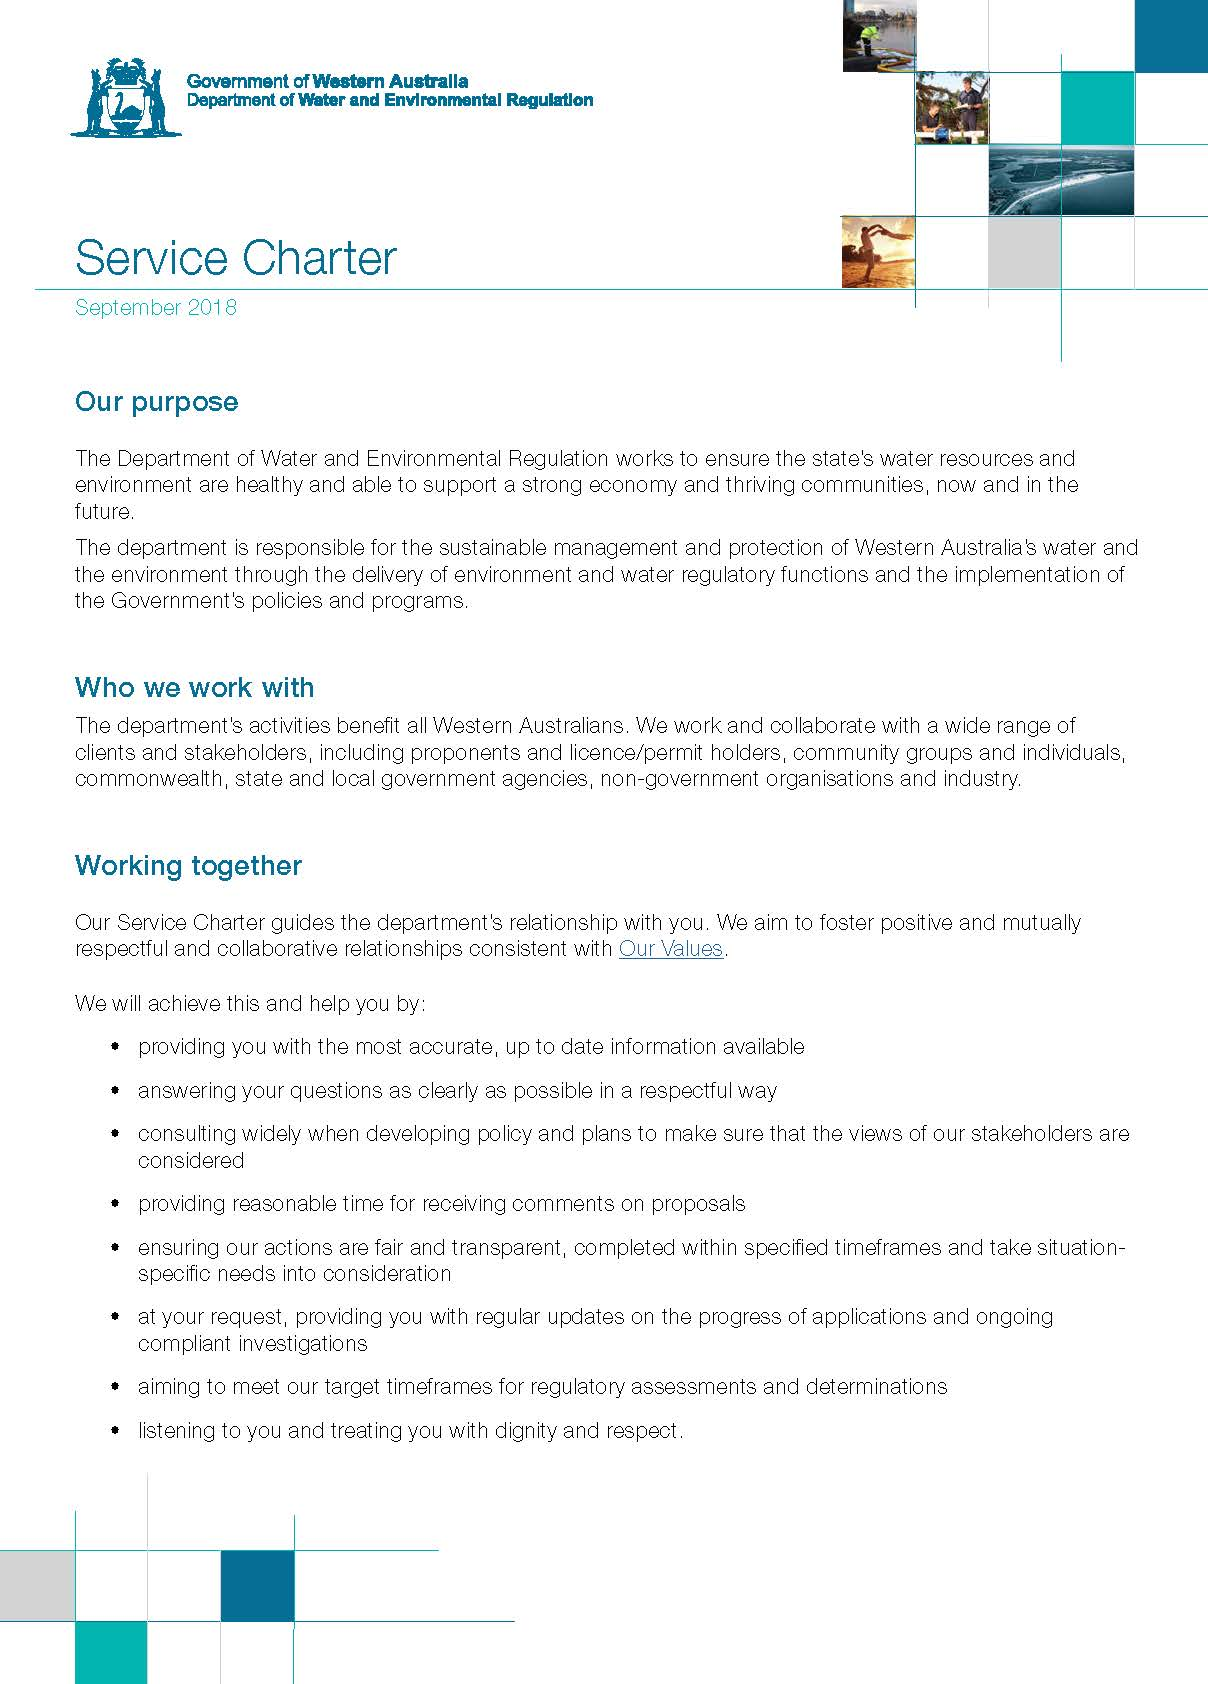 201809 Service Charter Page 1